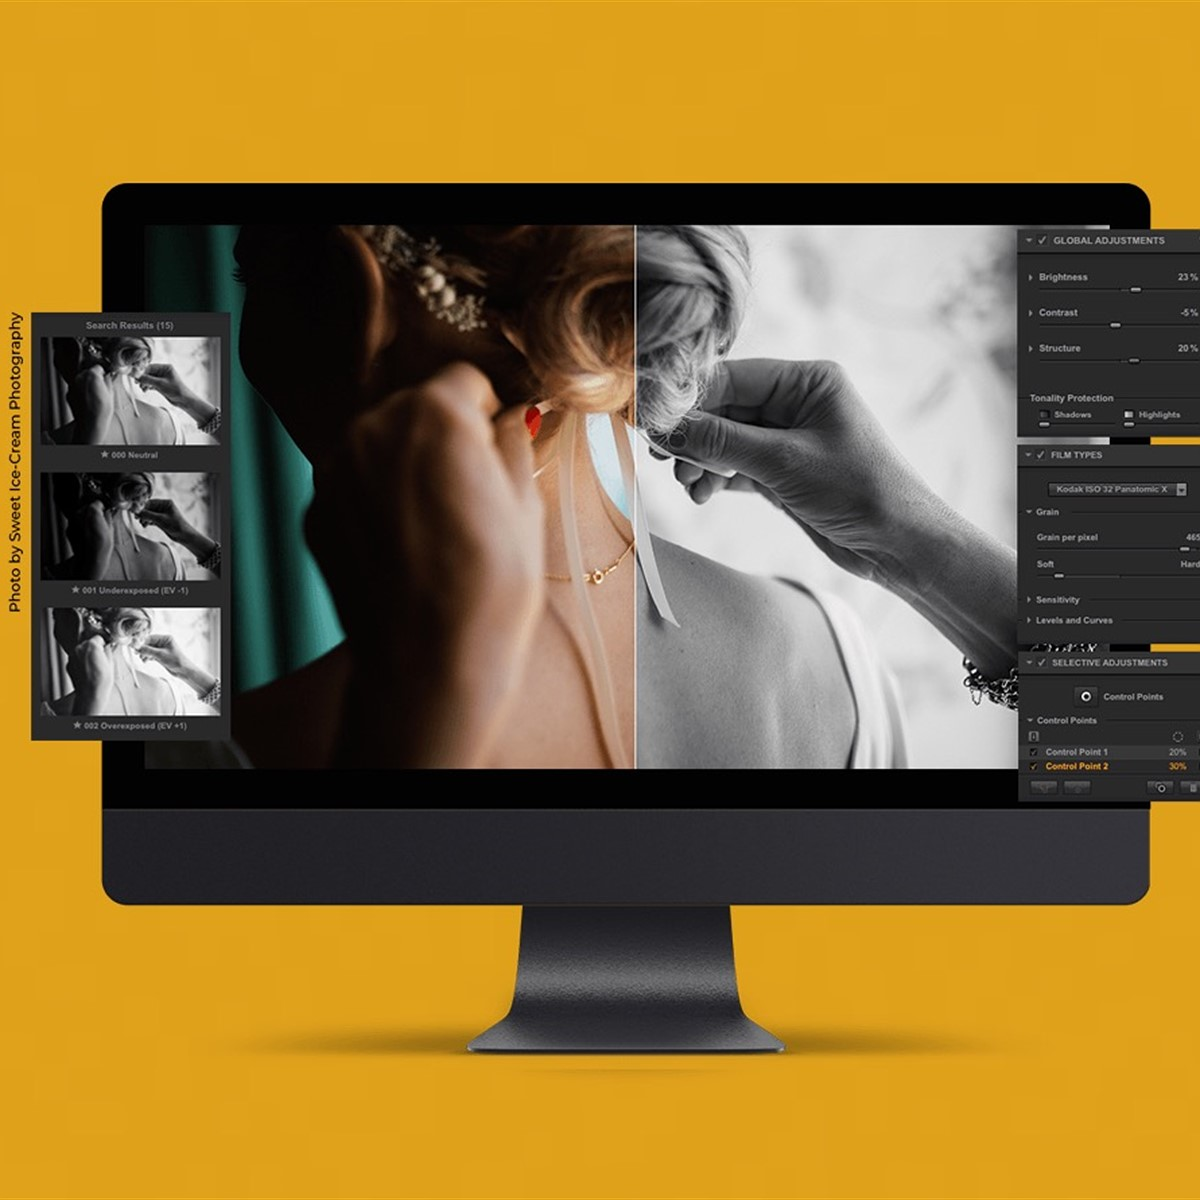 Brújula Hacer la vida laringe  DxO updates Nik Collection 2018 with better macOS, Adobe compatibility and  fewer bugs: Digital Photography Review